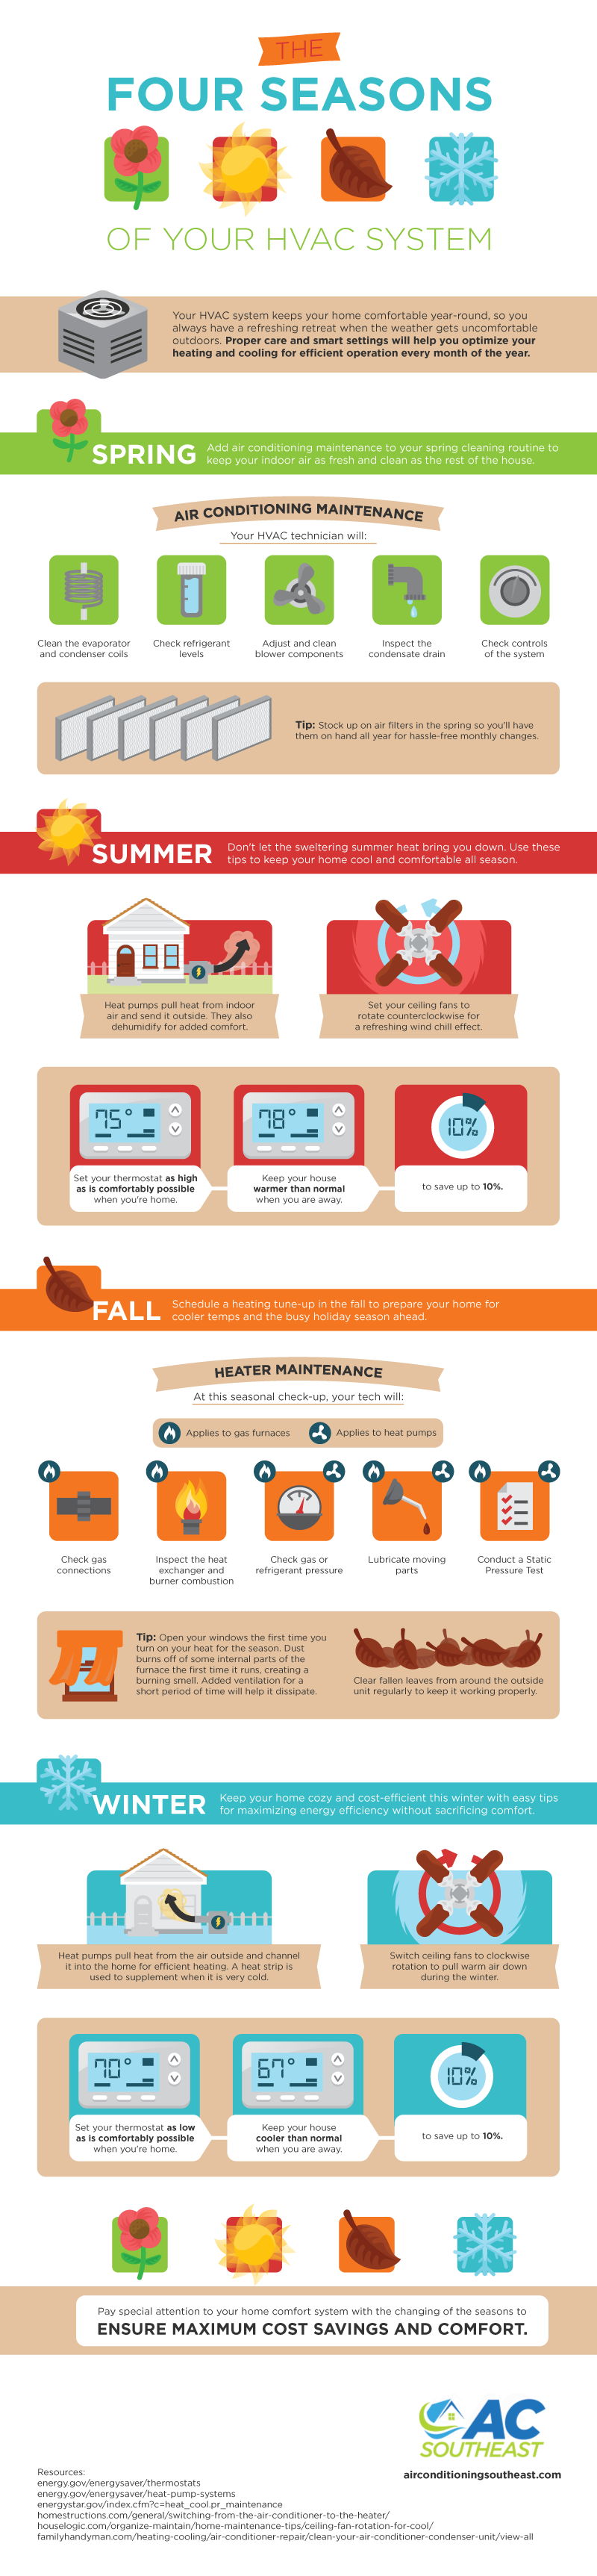 The Four Seasons of Your HVAC System